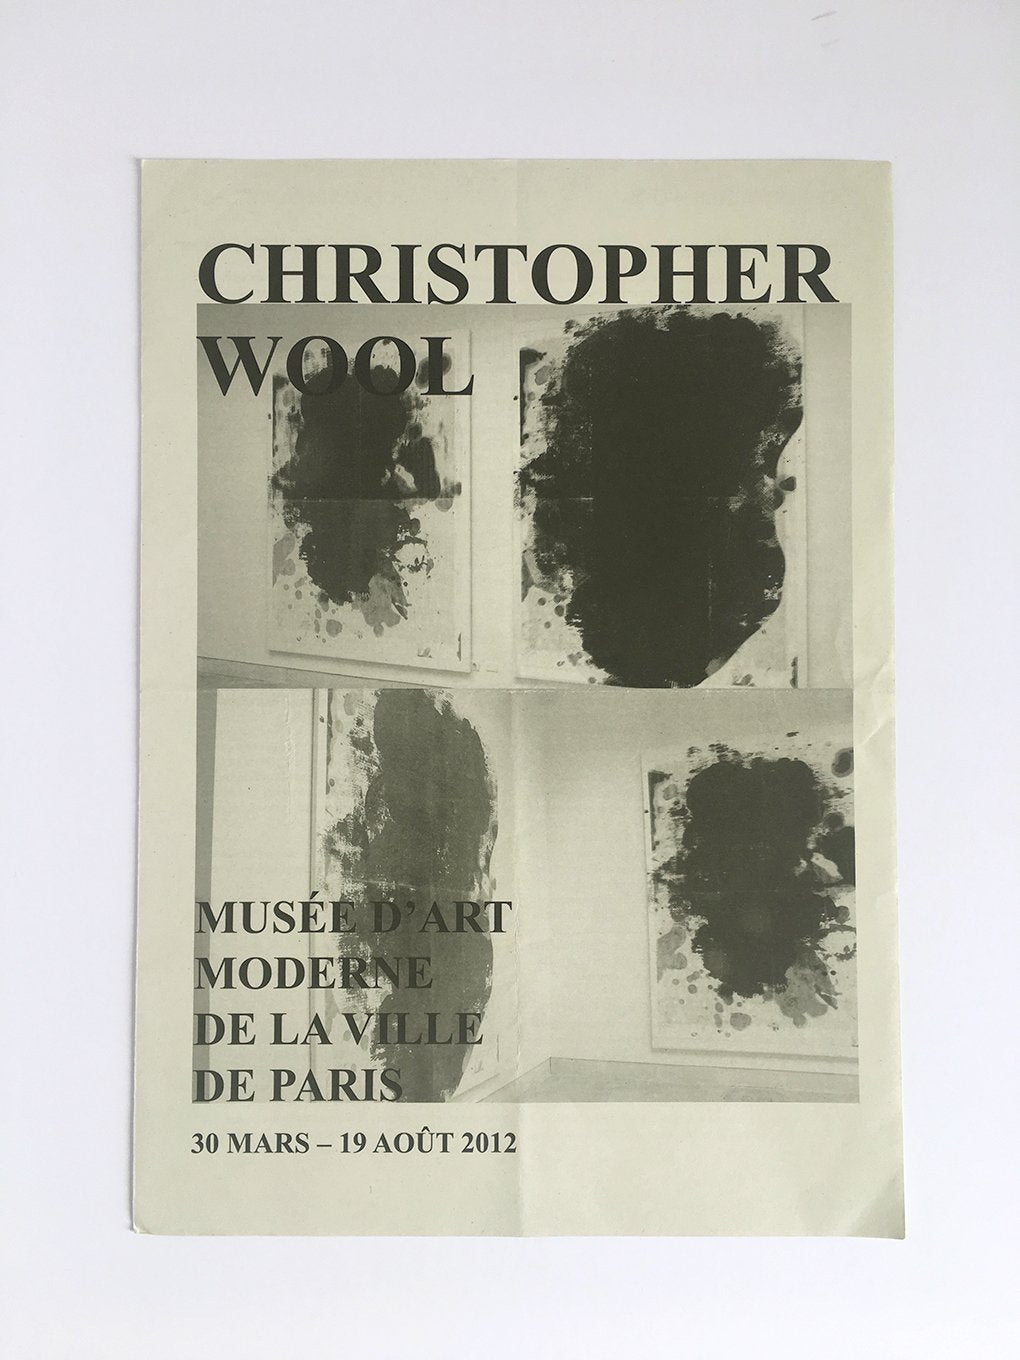 Christopher Wool at La Musée d'Art Moderne de la Ville de Paris - Catalogue